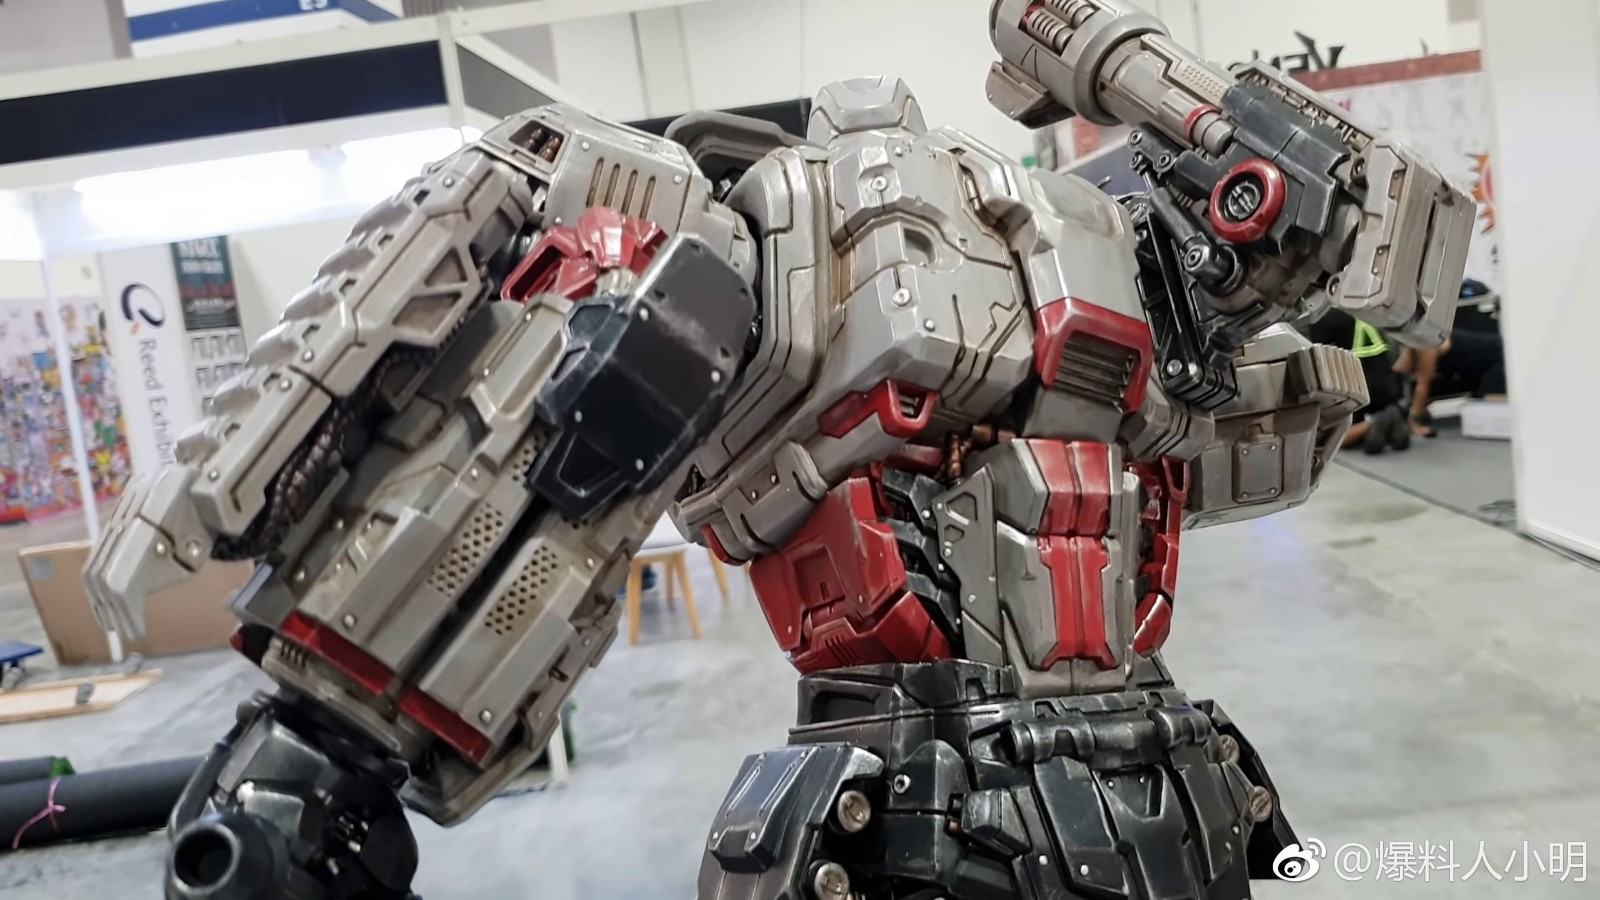 Transformers News: Video and Images of XM Studios Megatron Statue